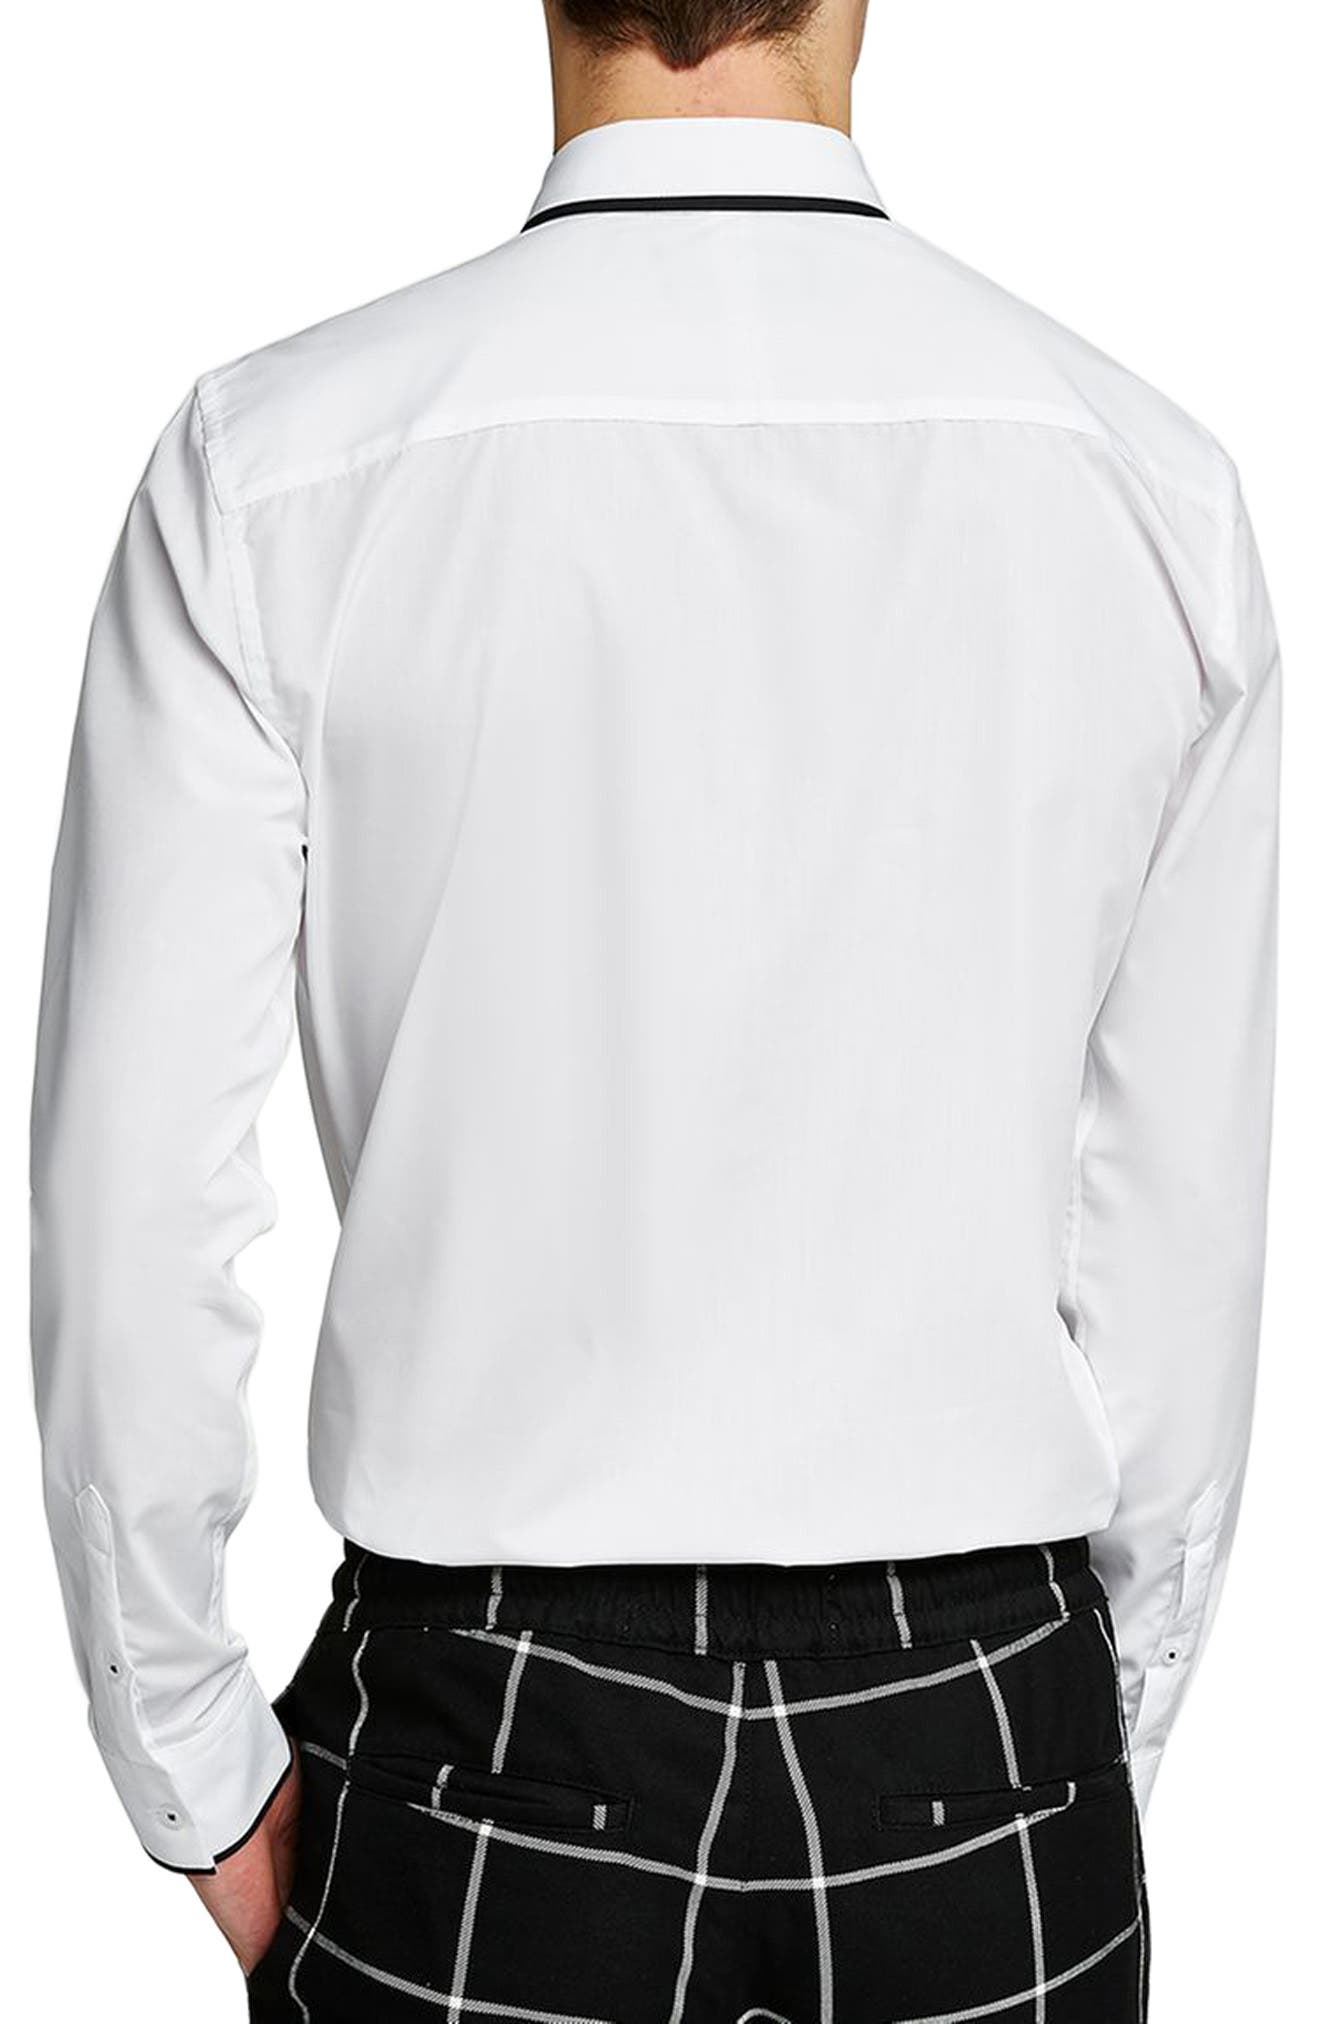 Smart Skinny Fit Dress Shirt,                             Alternate thumbnail 3, color,                             WHITE